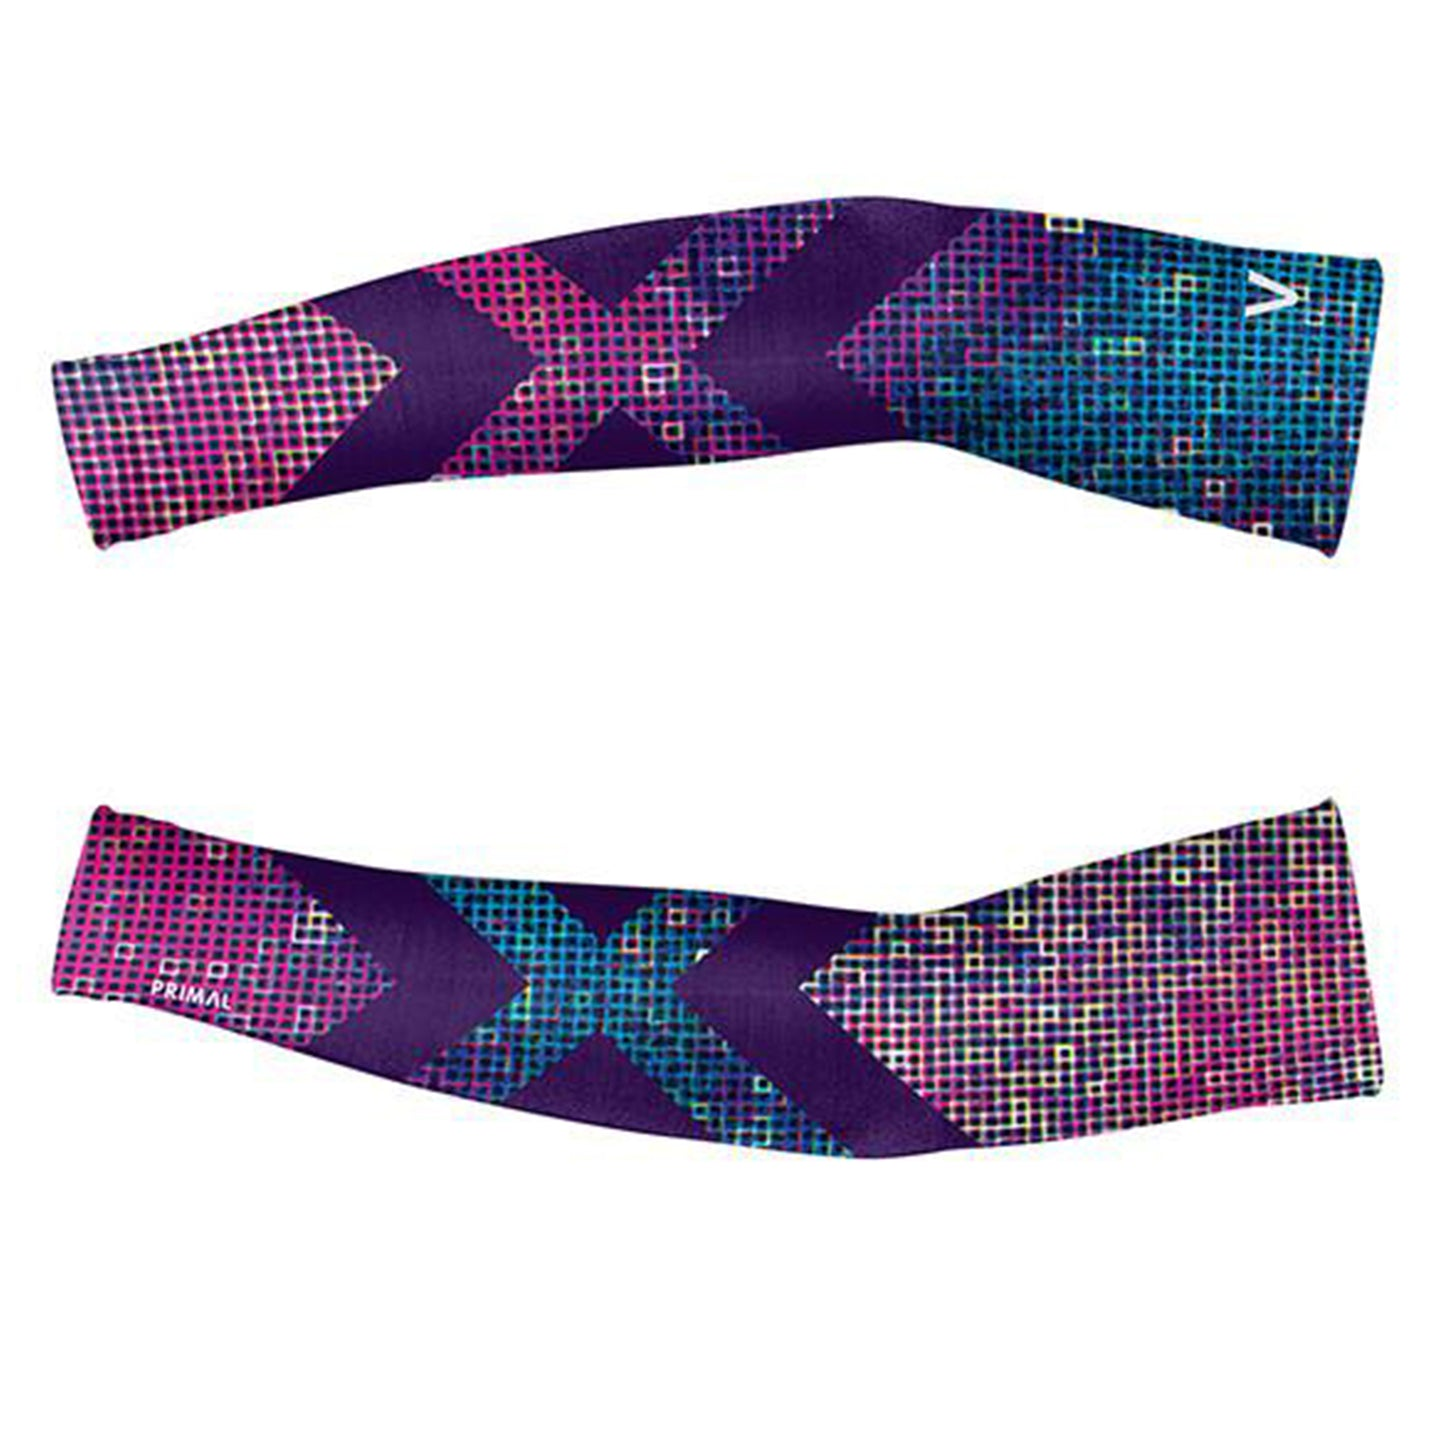 Primal Pixel8 Arm Warmers